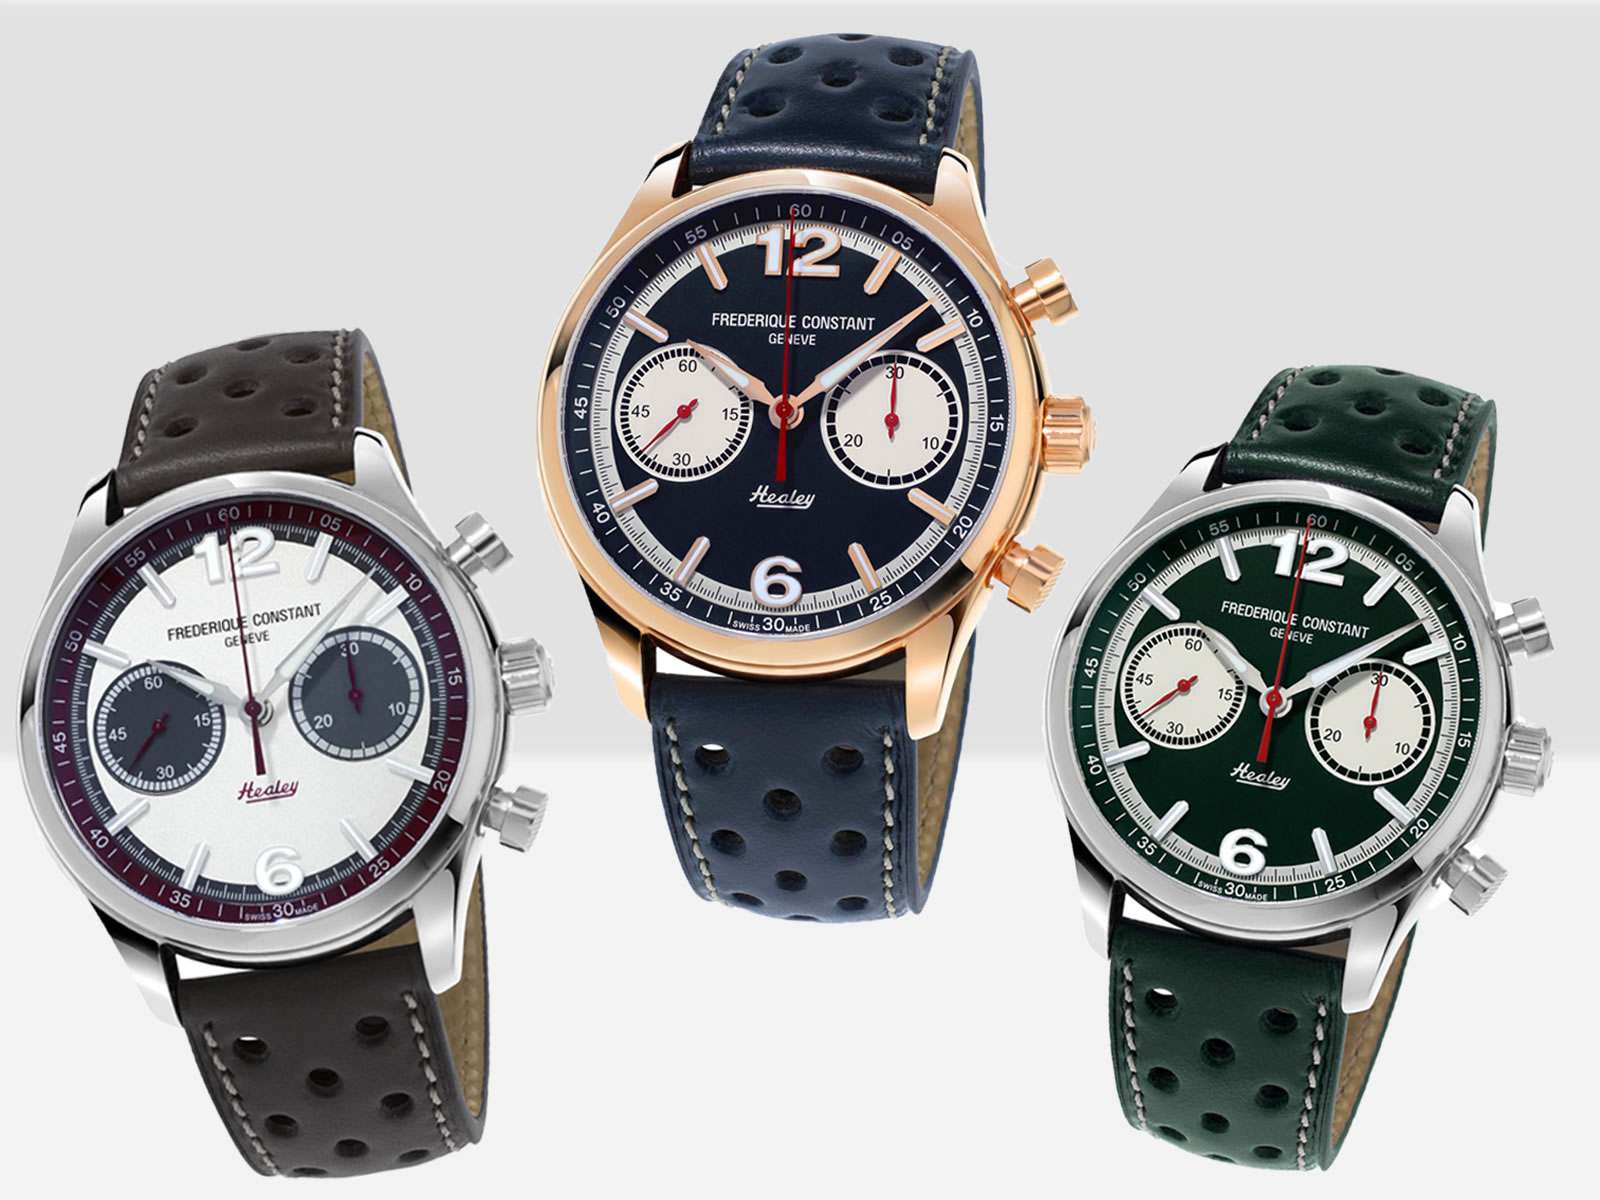 frederique-constant-vintage-rally-healey-chronograph-collection-1-.jpg